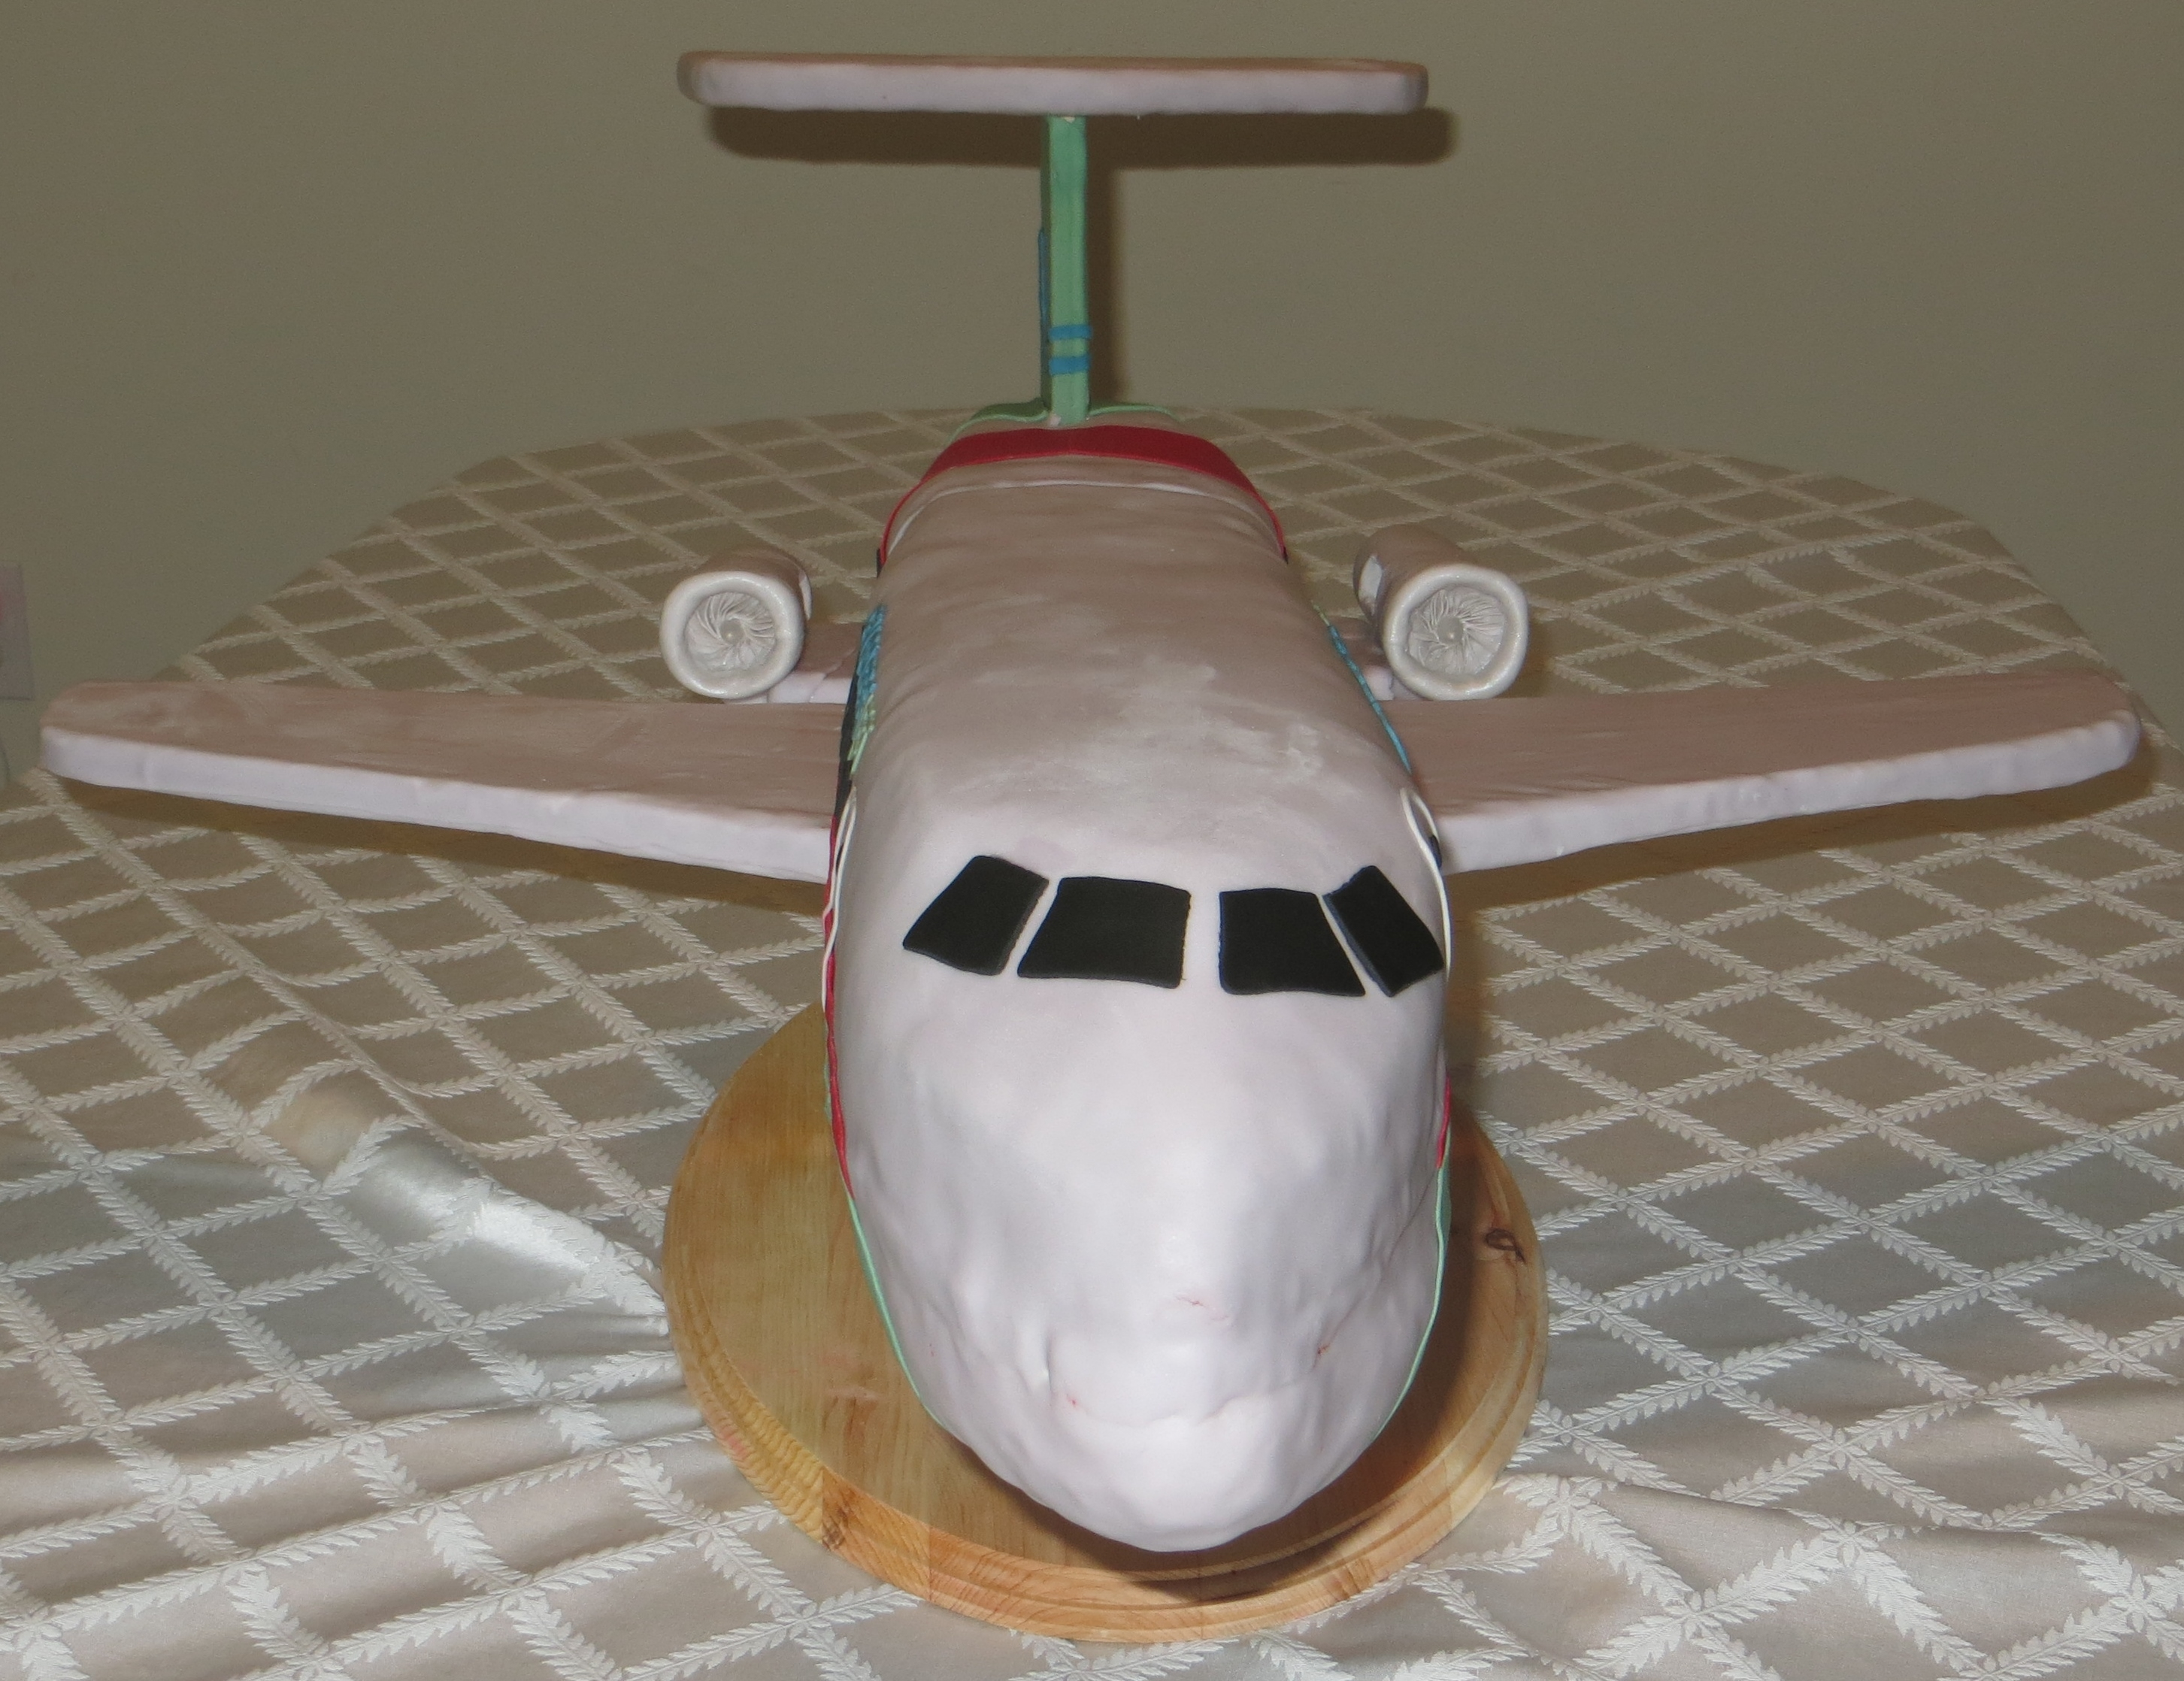 I Was Trying To Make An Embraer 145 For My Husband It A Red Velvet Cake With Cream Cheese Frosting And Covered In Fondant The Bottom RKT Use